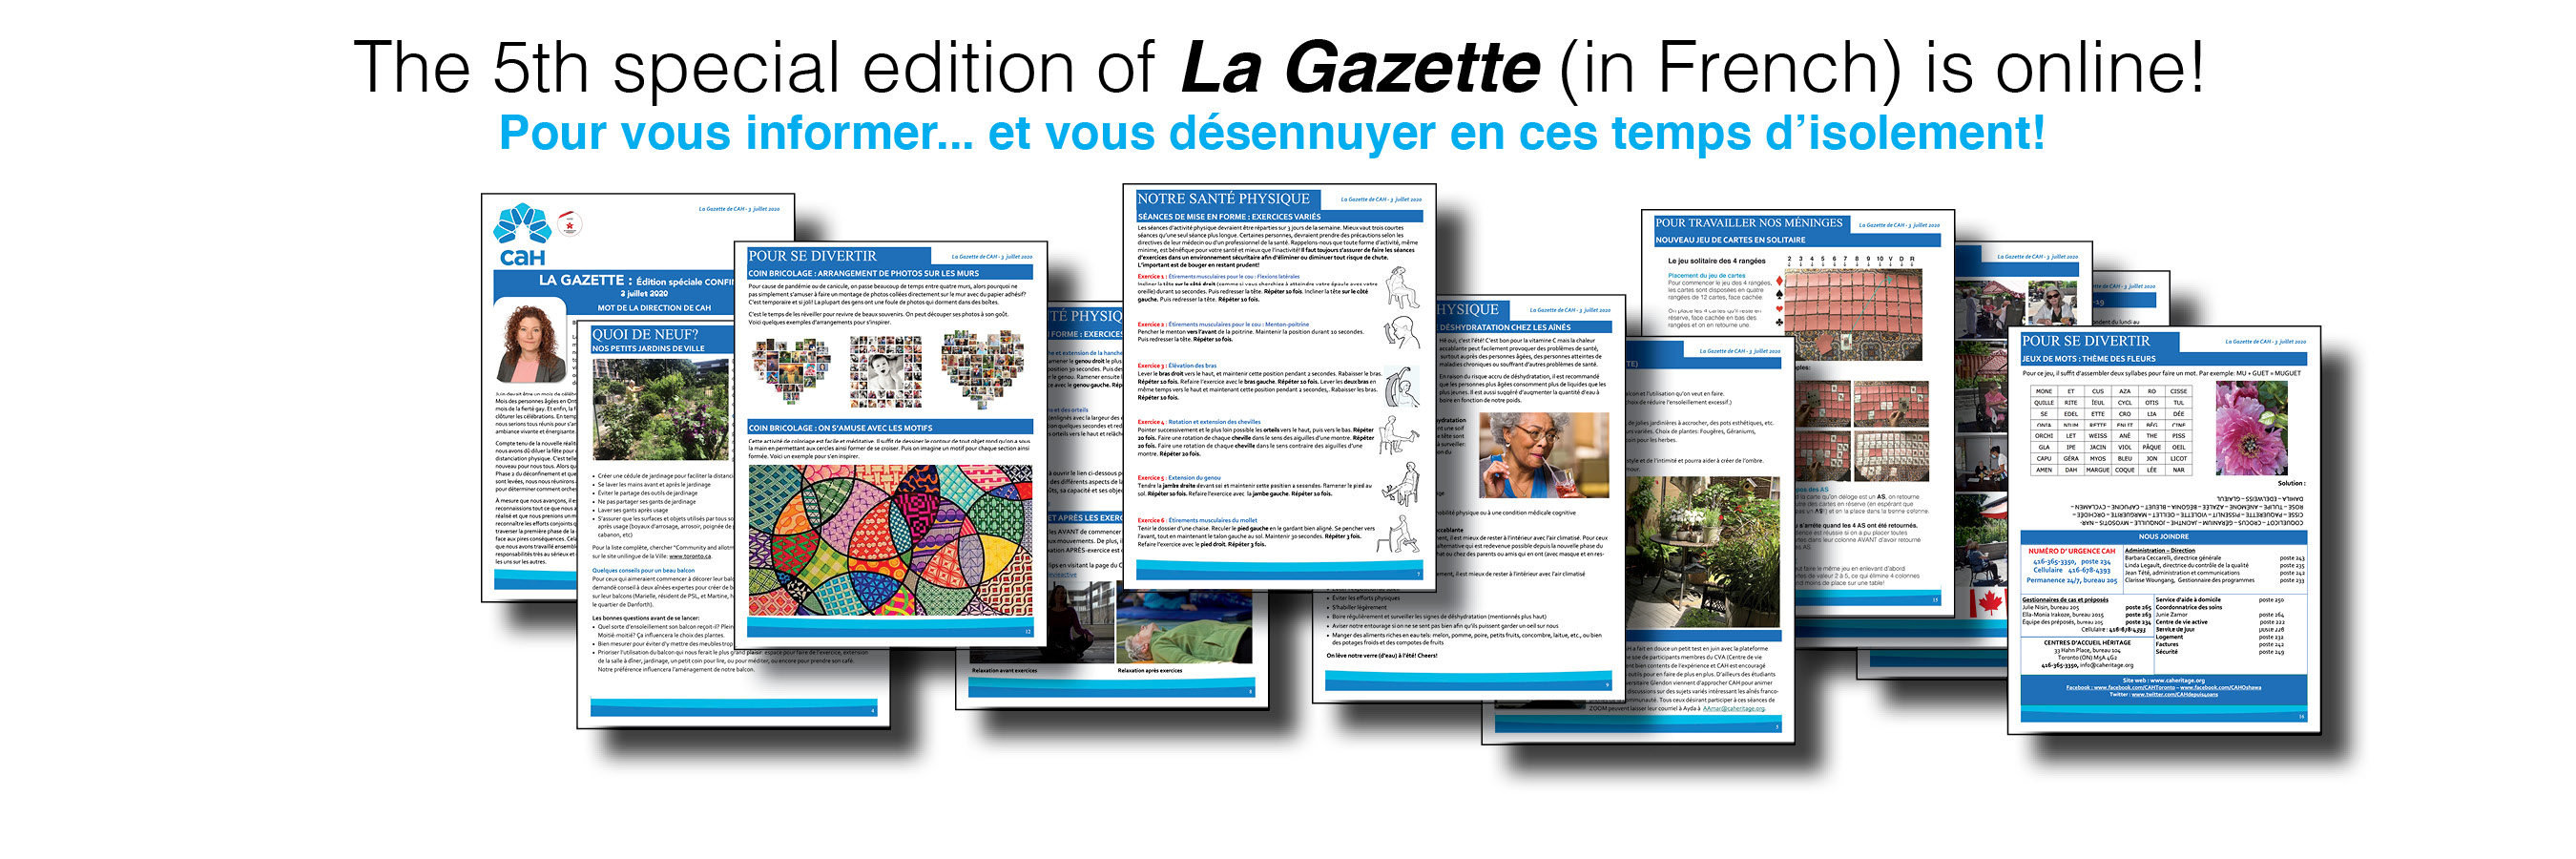 The 5th special edition of La Gazette (in French) is online!